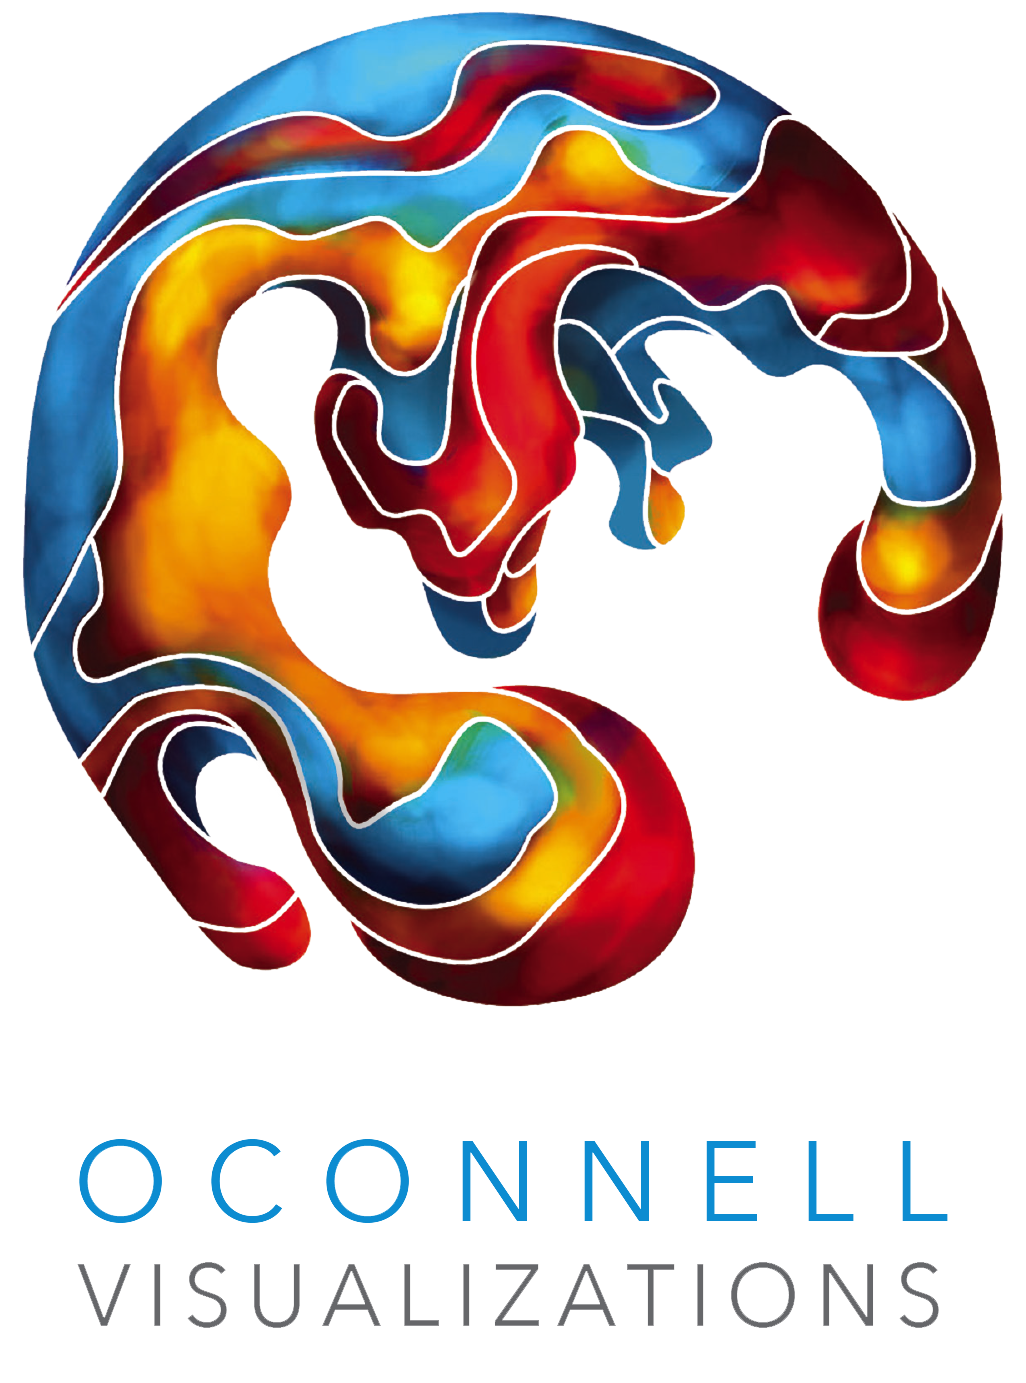 O'Connell Visualizations